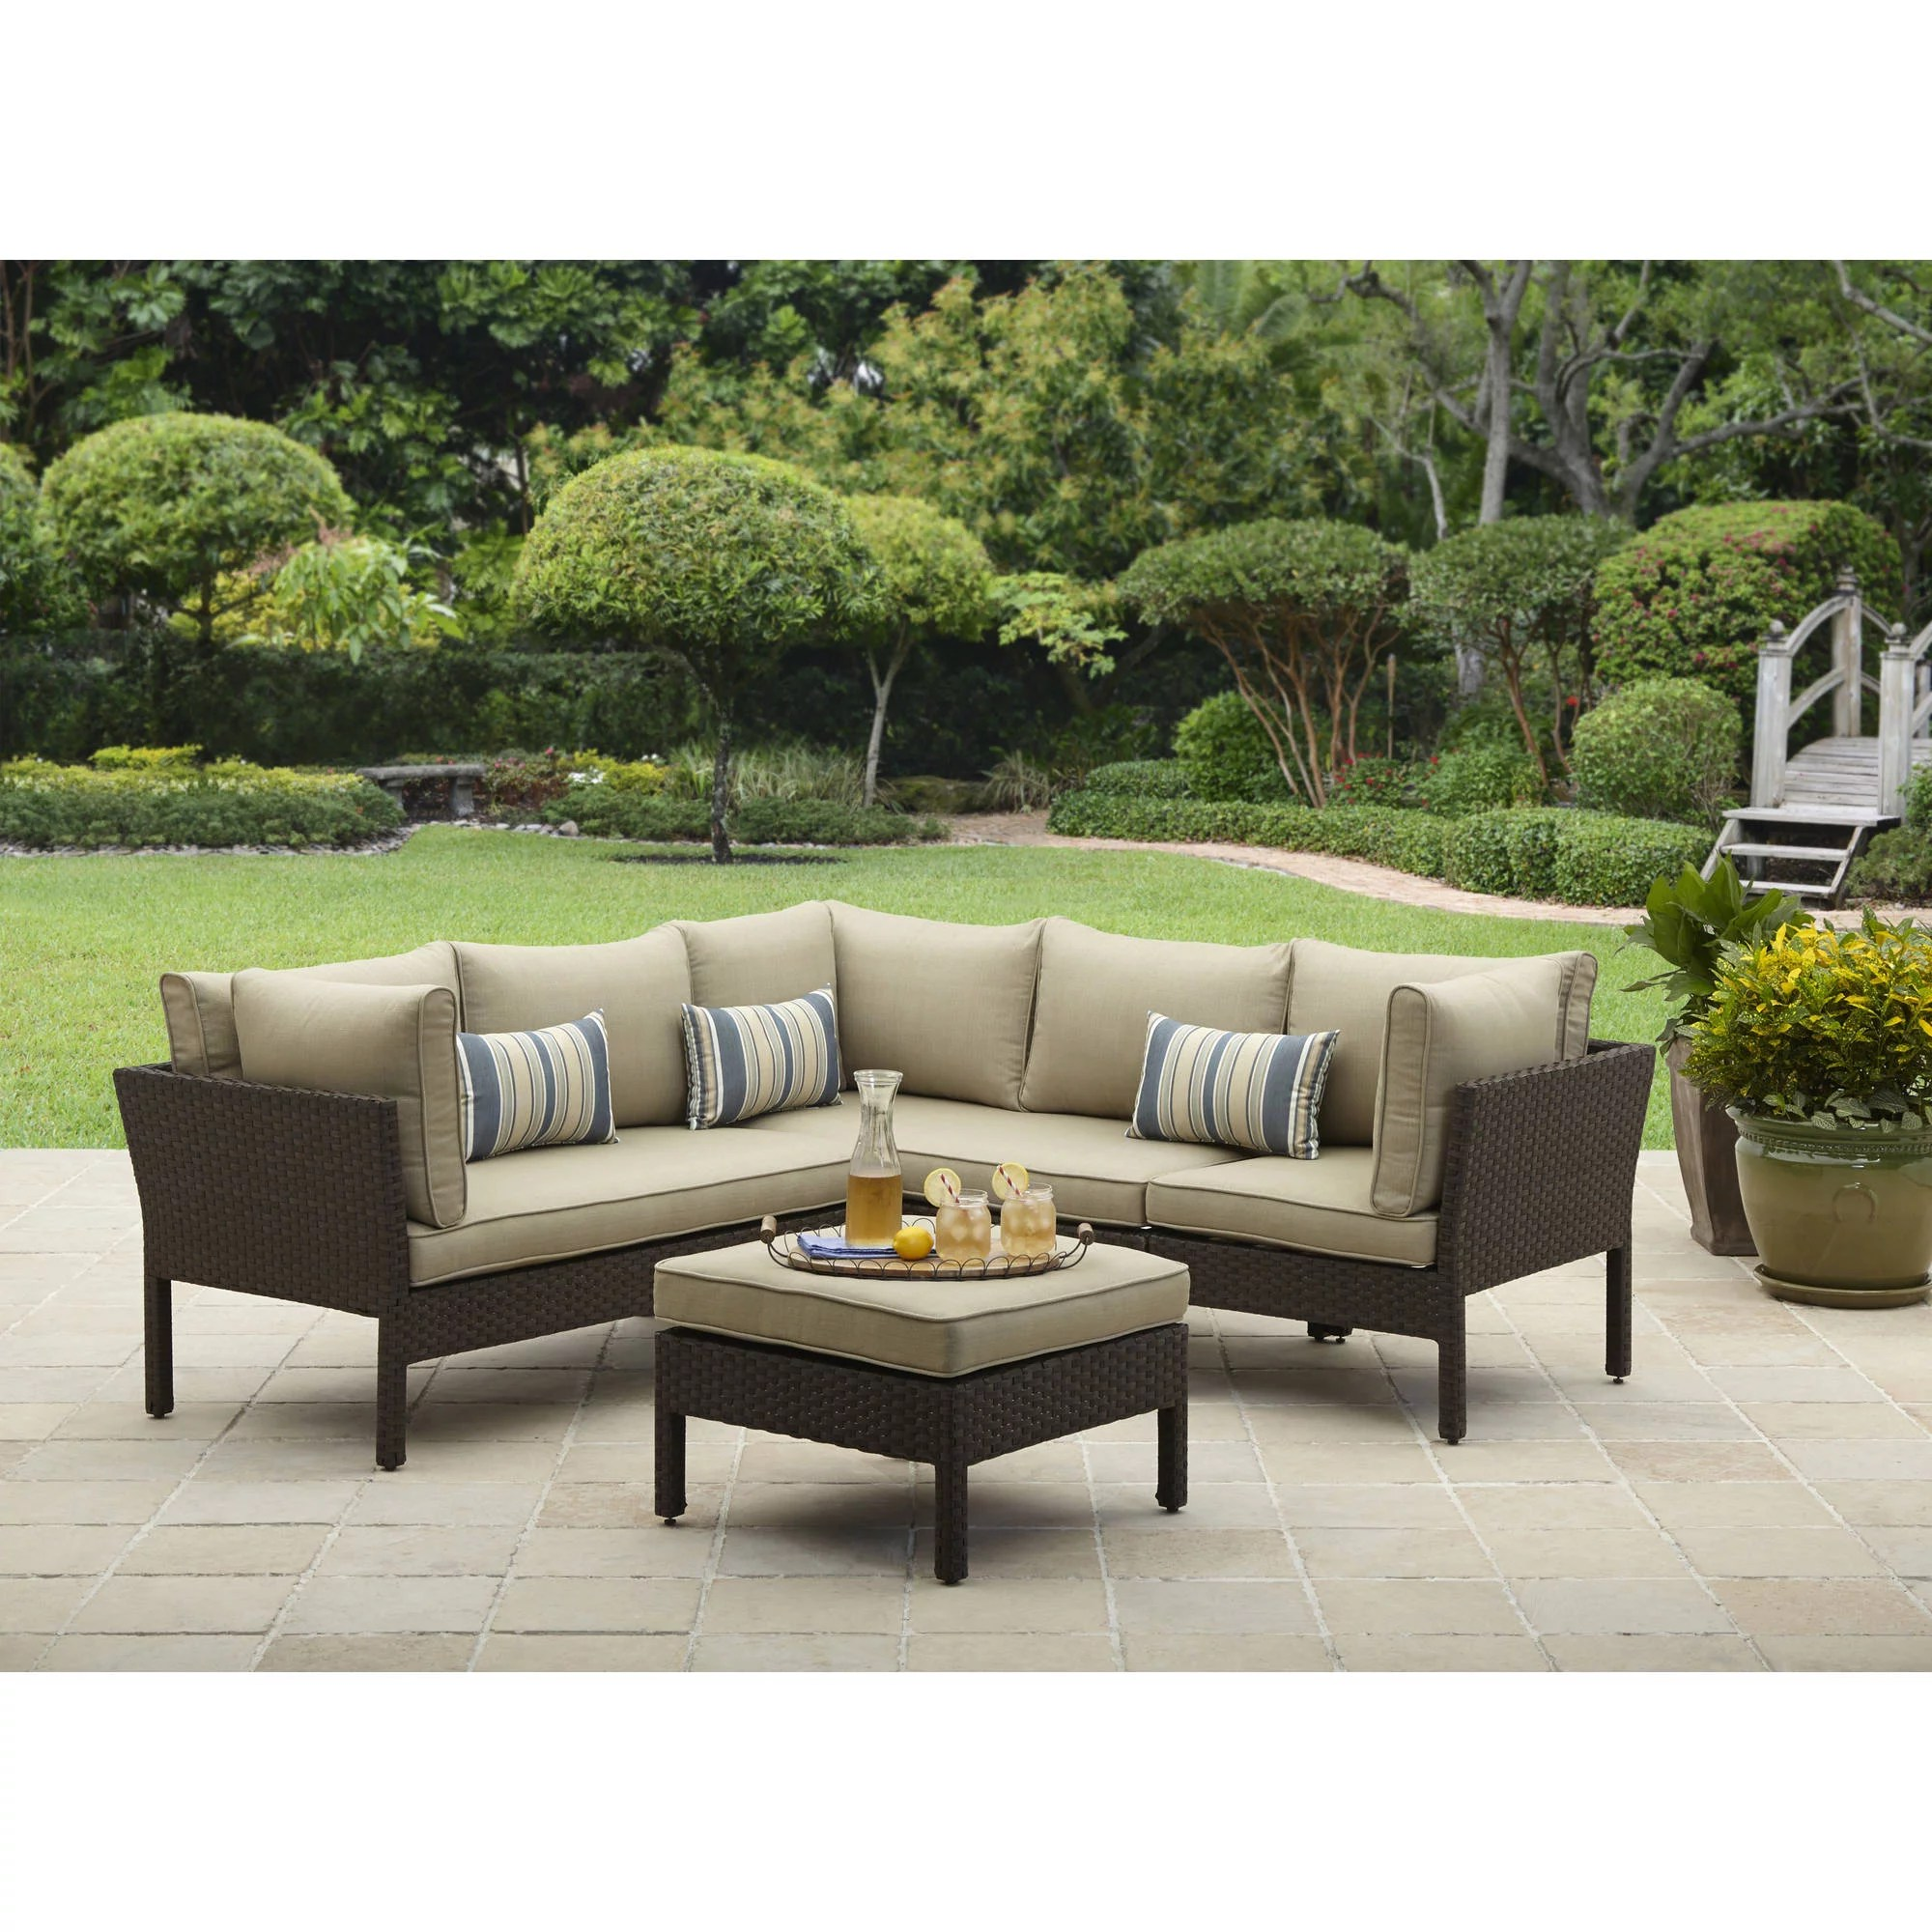 Outdoor Lounge Sofa Sofa Outdoor Outdoor Sofa On Hayneedle Loveseat Thesofa